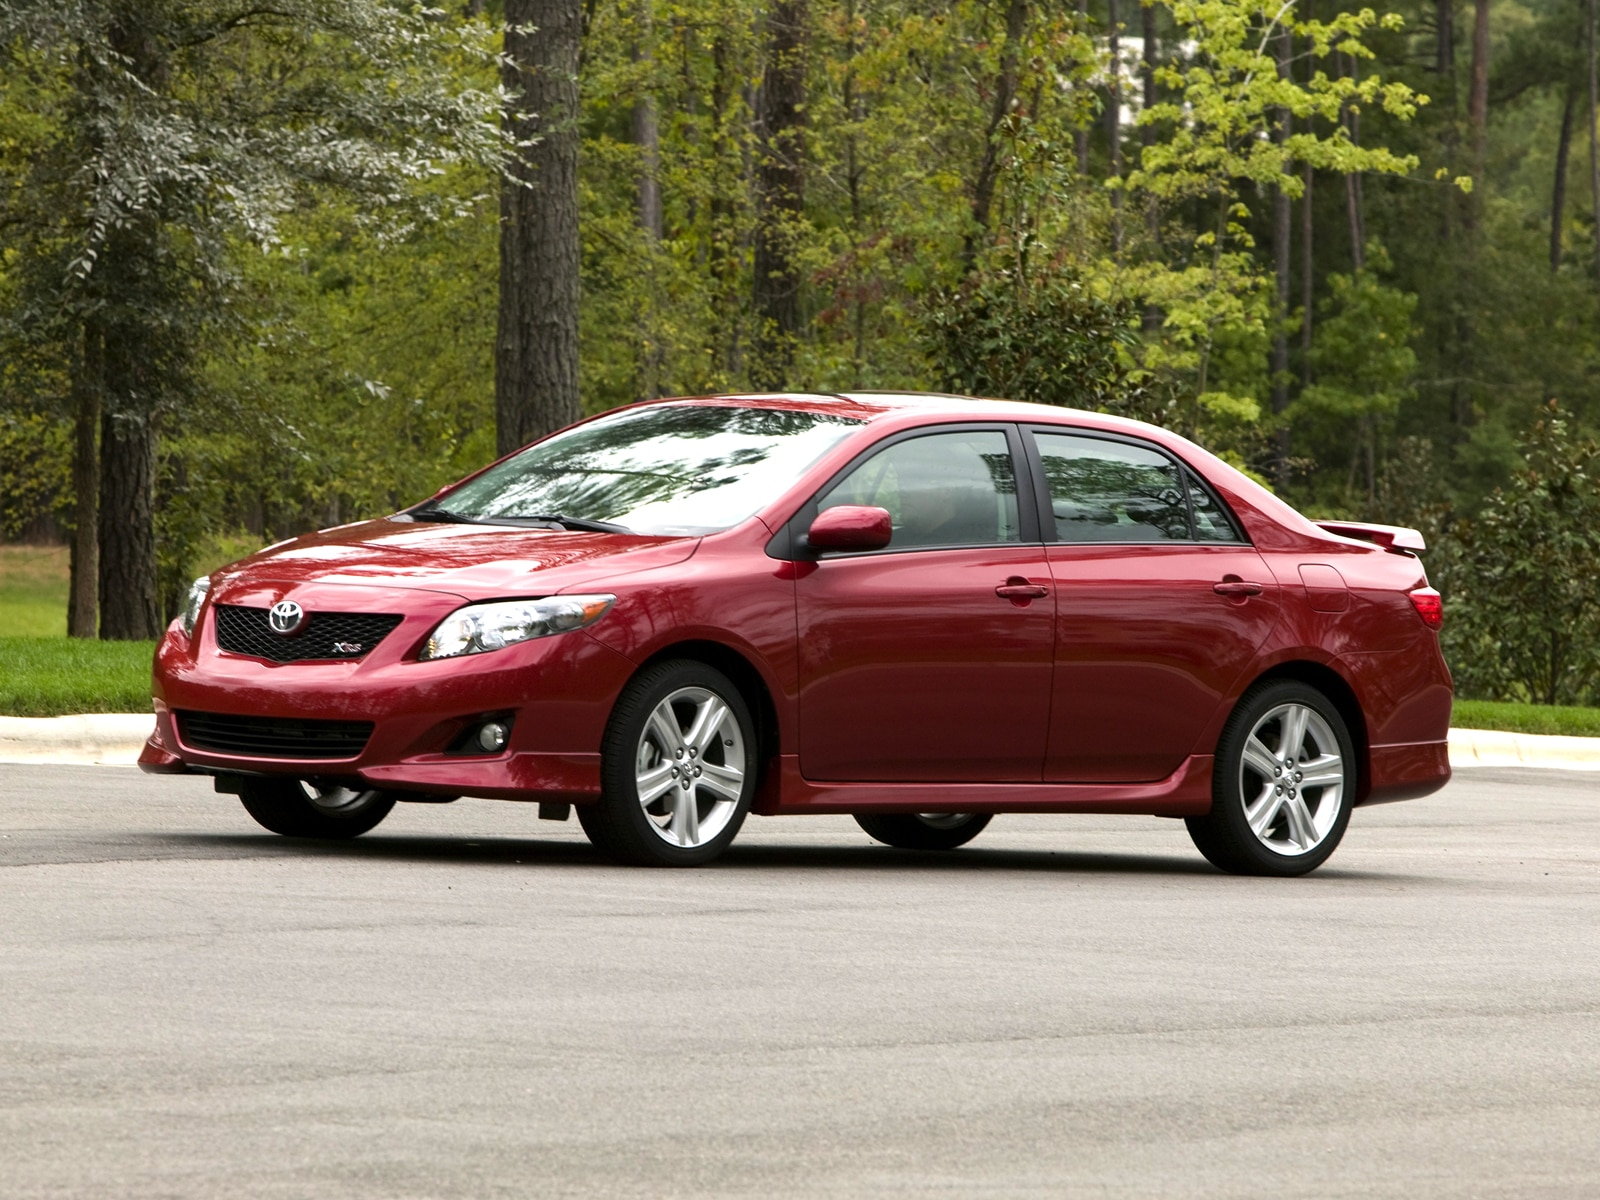 2009 Toyota Corolla Xrs Toyota Sport Sedan Review